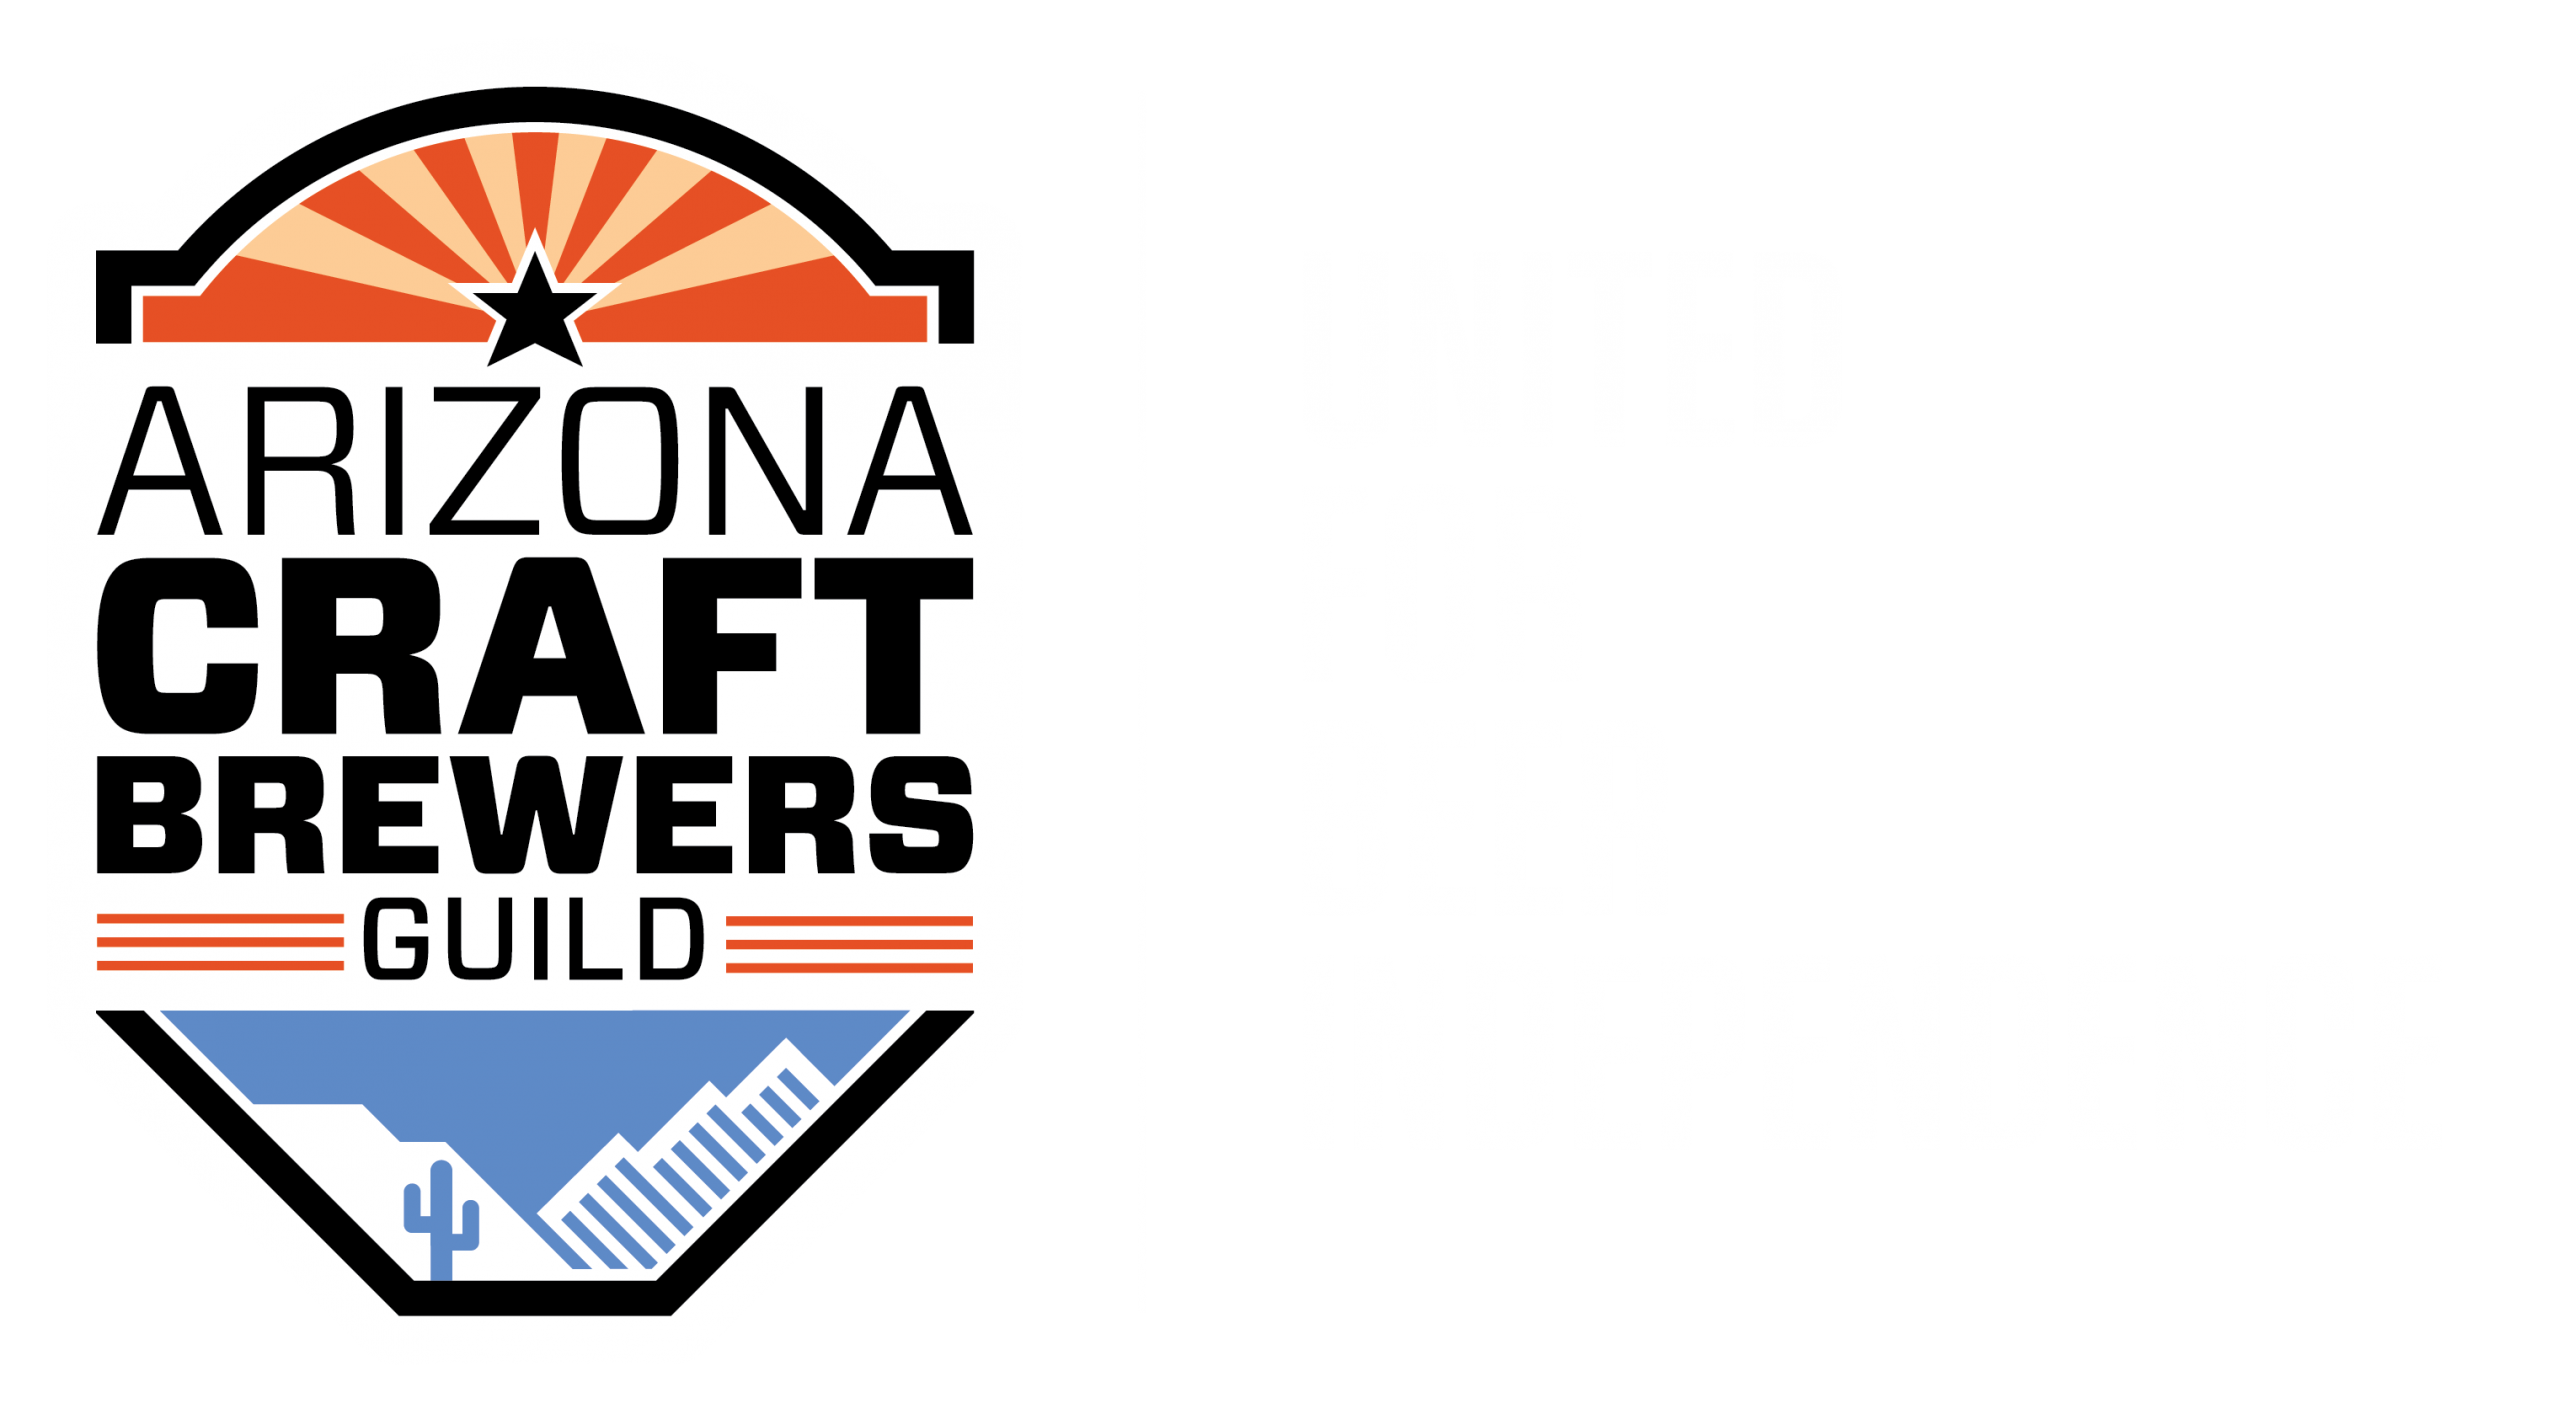 meet the brewer | Arizona Craft Brewers Guild